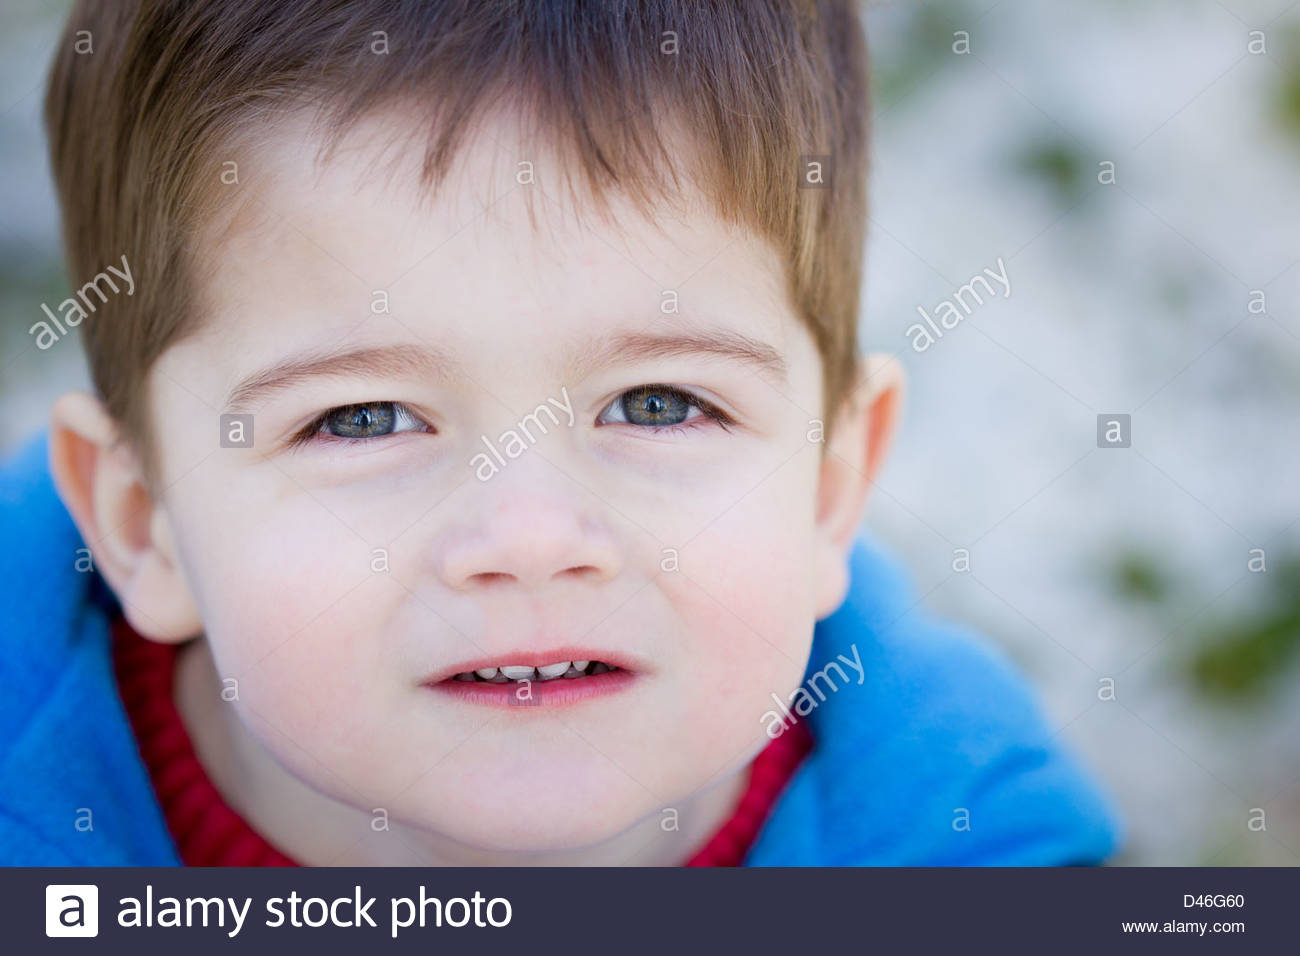 portrait of a cute little boy with brown hair and blue